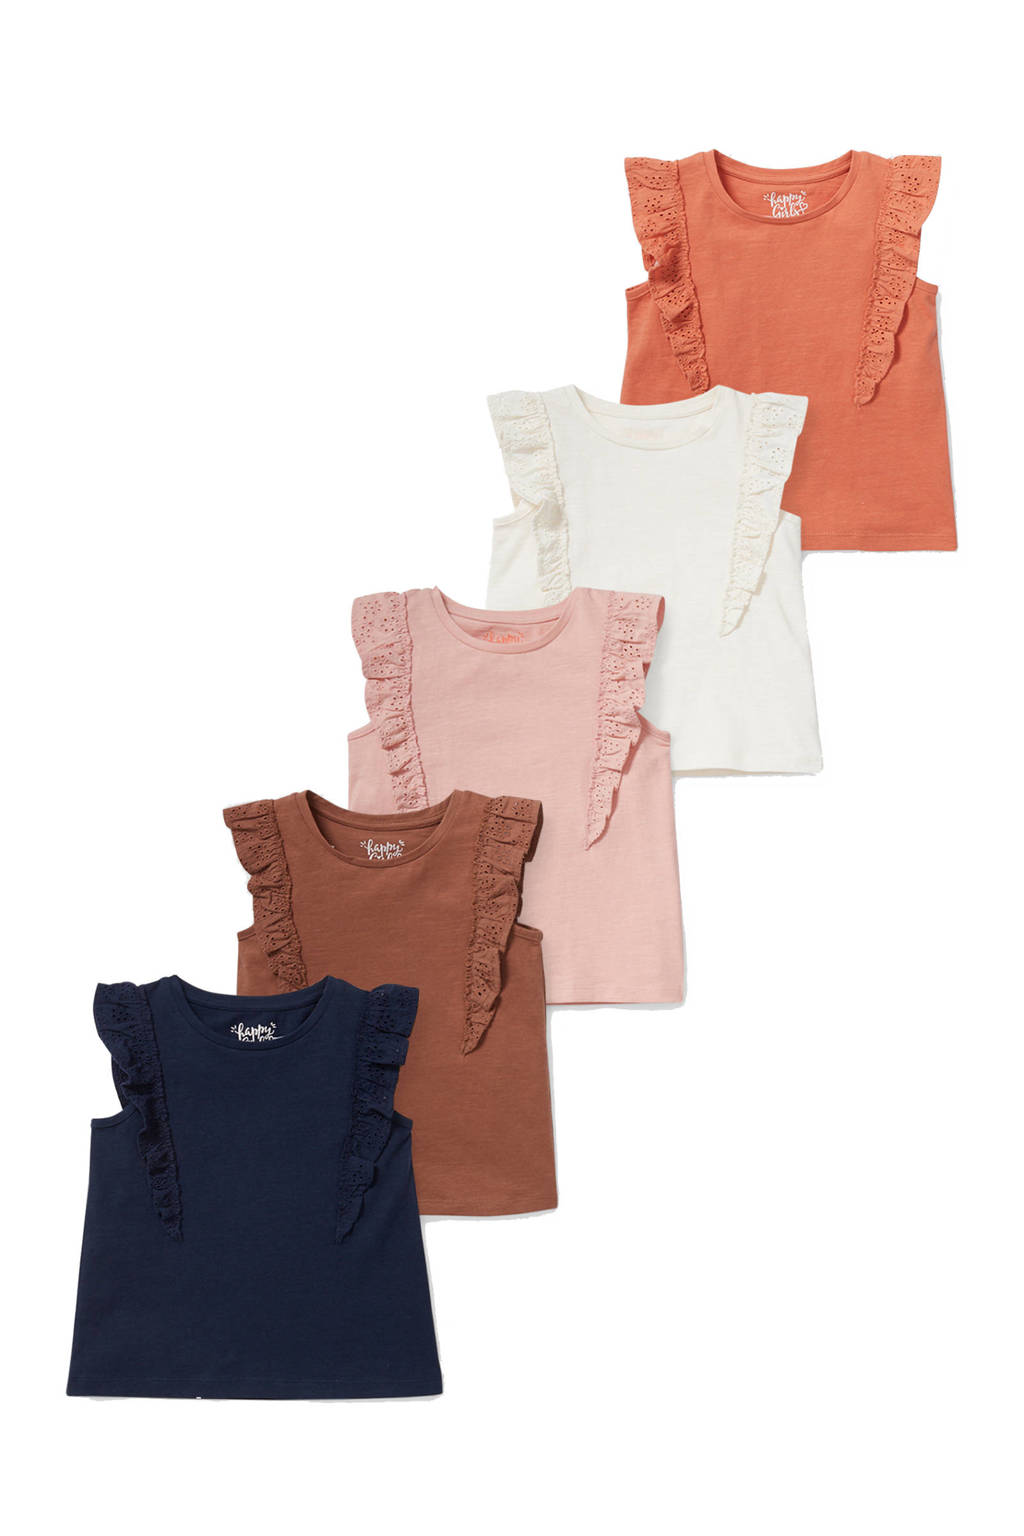 C&A Happy girls Club T-shirt met broderie en ruches - set van 5 uni multi, Donkerblauw/bruin/roze/ecru/oranje